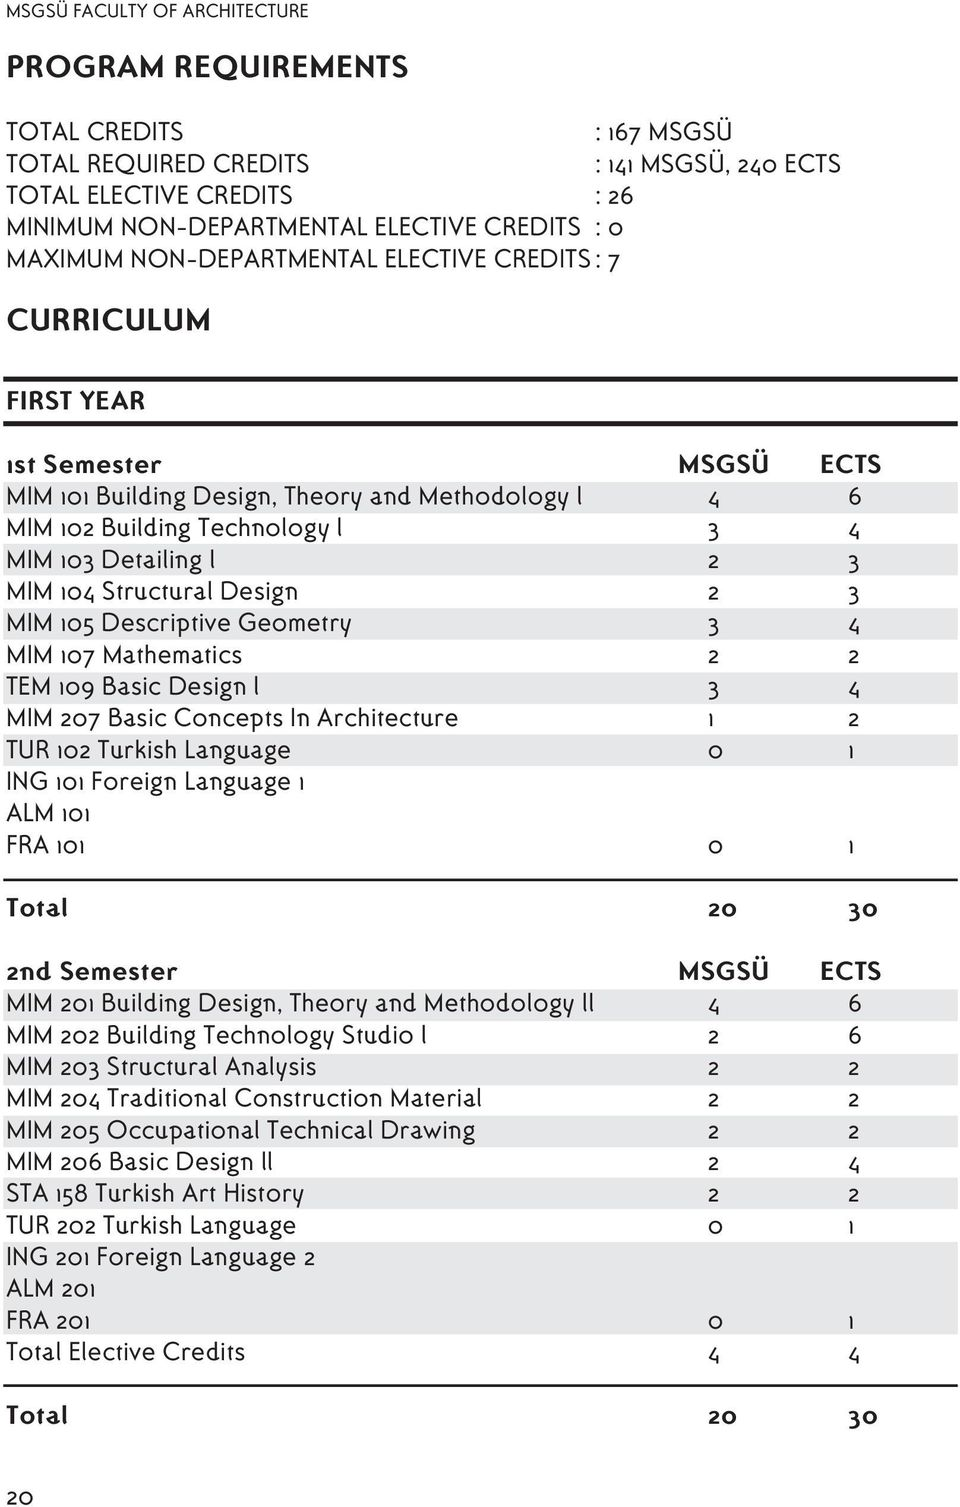 2 3 MIM 104 Structural Design 2 3 MIM 105 Descriptive Geometry 3 4 MIM 107 Mathematics 2 2 TEM 109 Basic Design l 3 4 MIM 207 Basic Concepts In Architecture 1 2 TUR 102 Turkish Language 0 1 ING 101